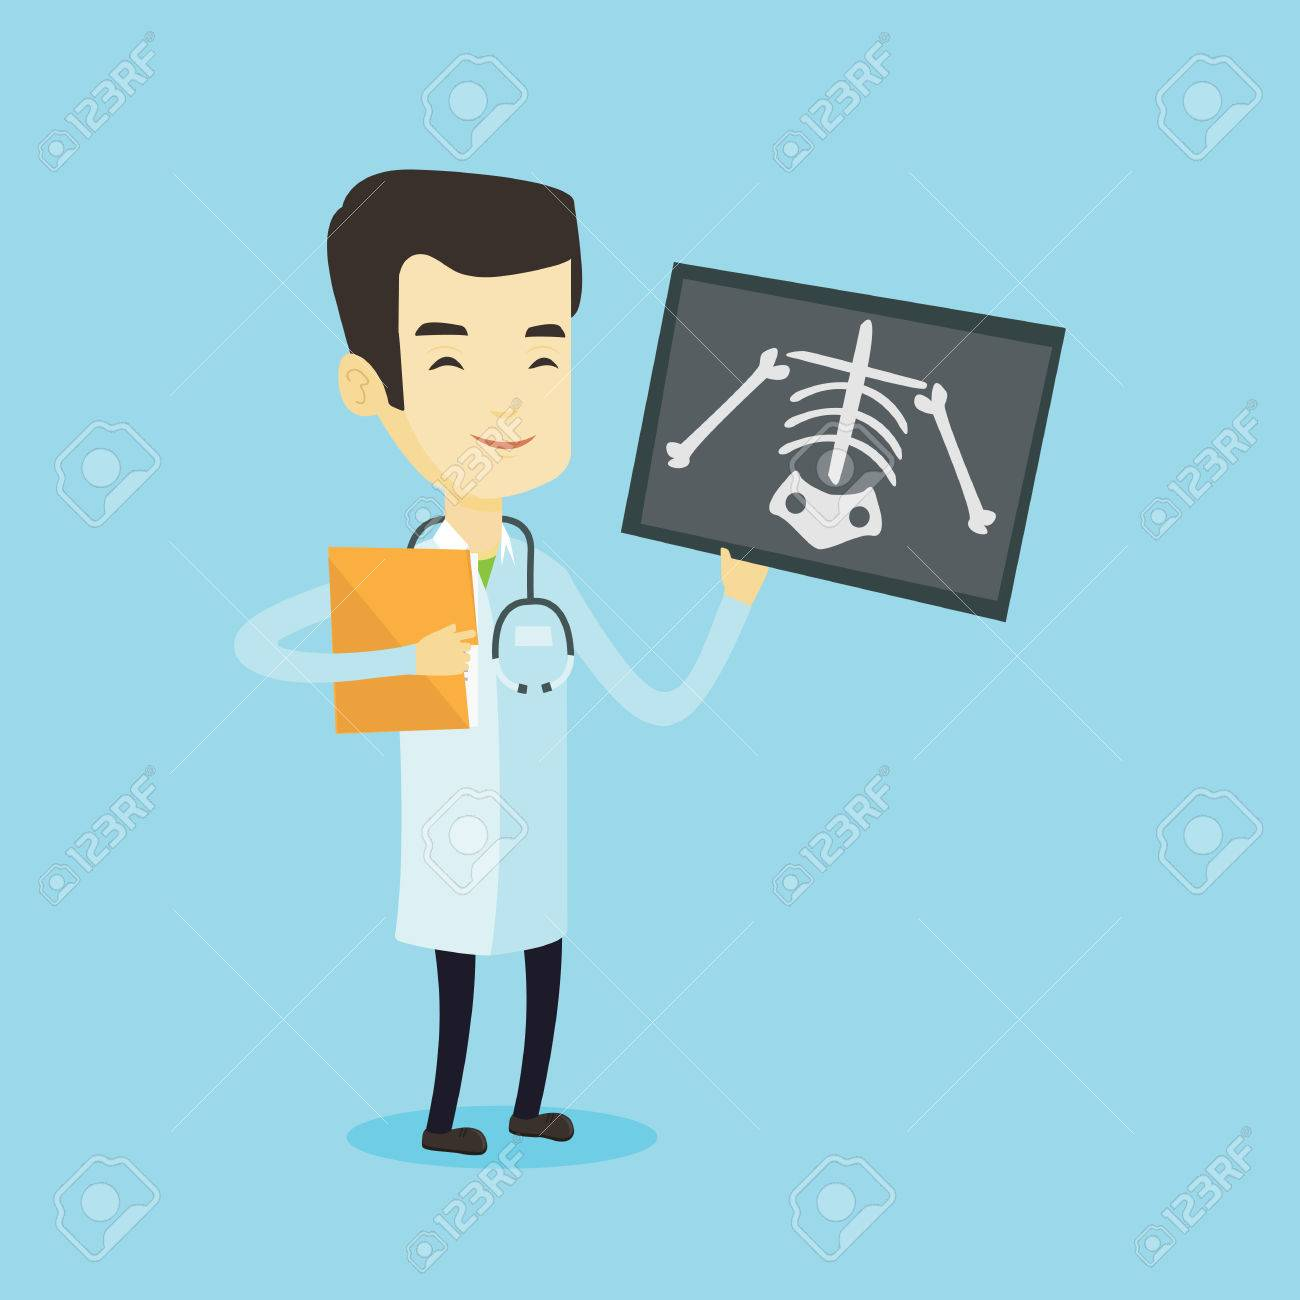 Asian doctor examining a radiograph. Young smiling doctor in medical gown looking at a chest radiograph. Doctor observing a skeleton radiograph. Vector flat design illustration. Square layout. - 74078180